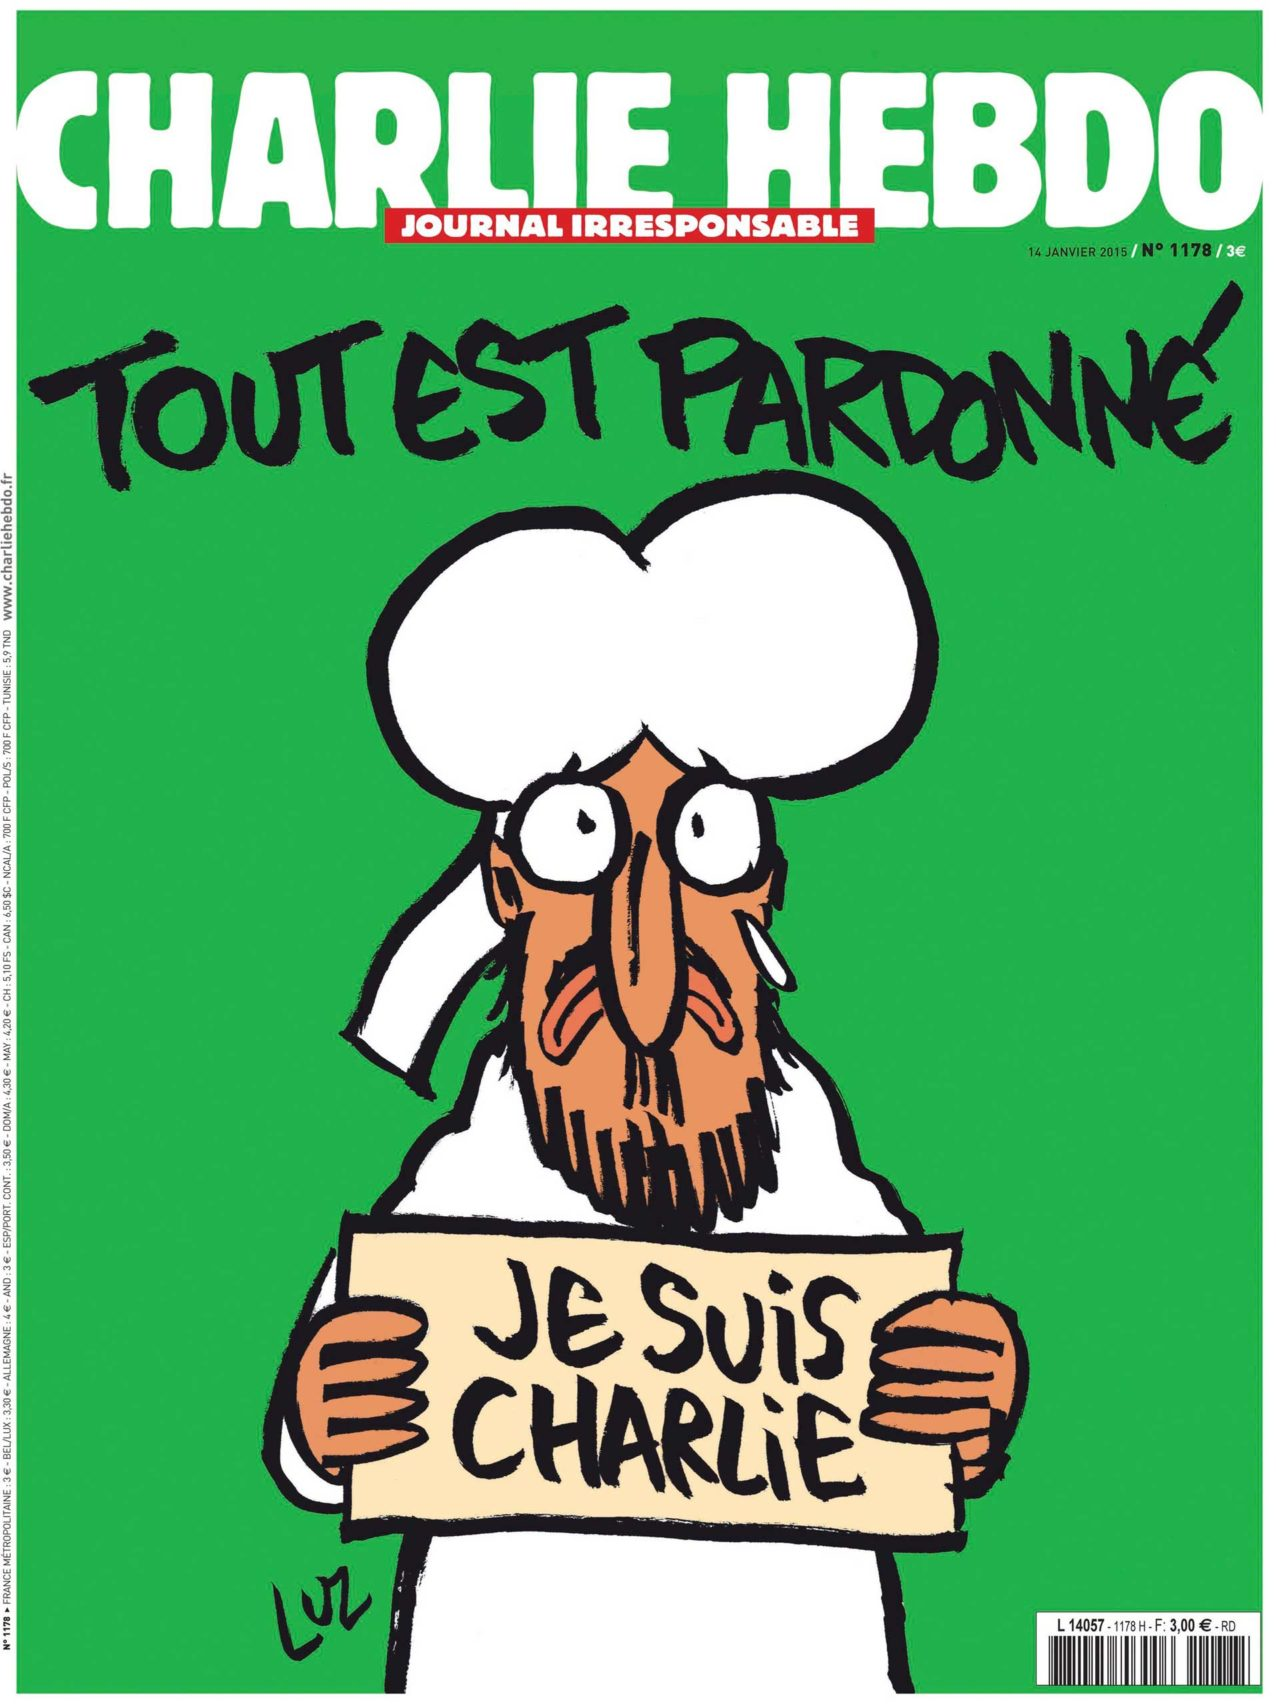 Cover of Charlie Hebdo after attacks